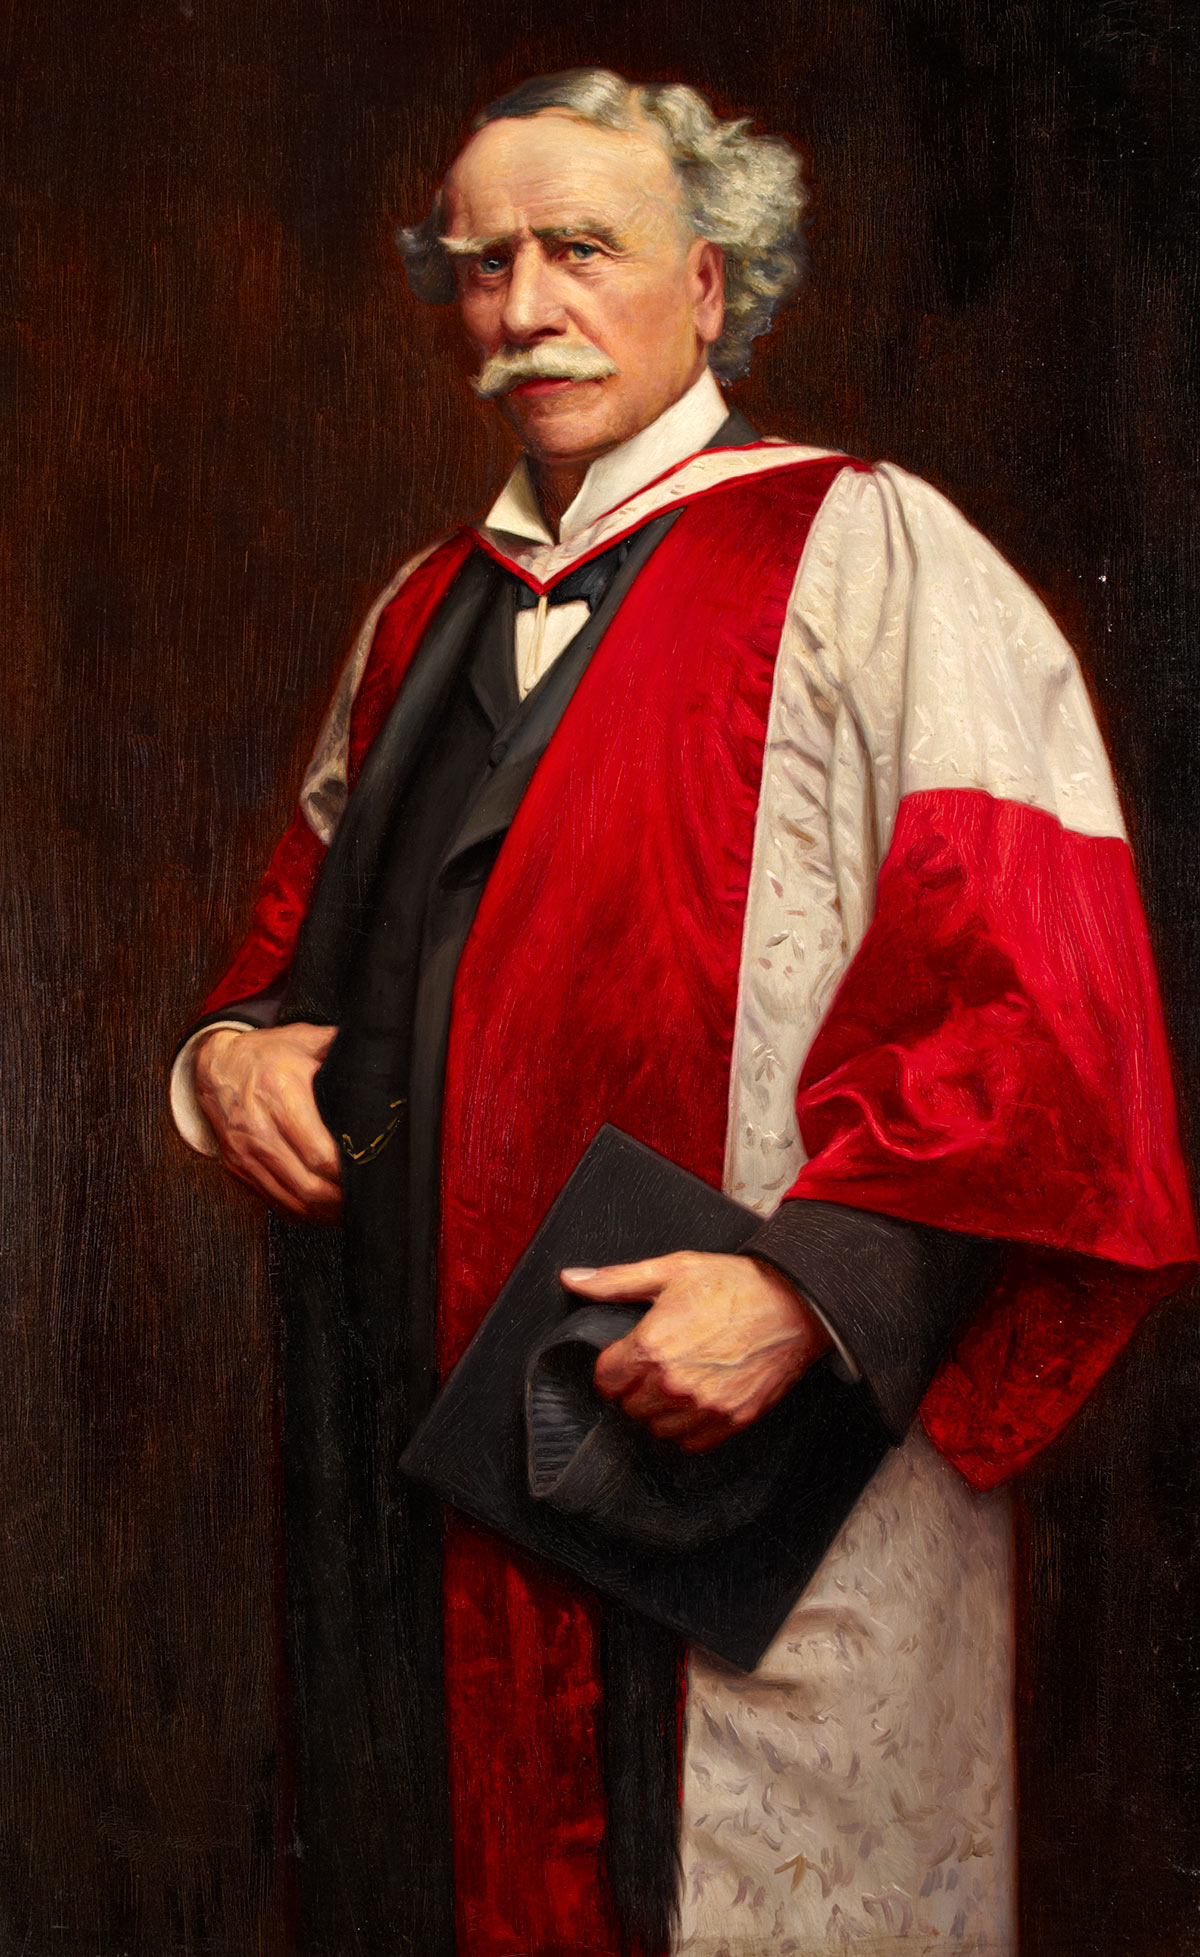 Oil painting of W.H. Cummings in doctoral robes by F.G.A. Butler (active 1900-1918).